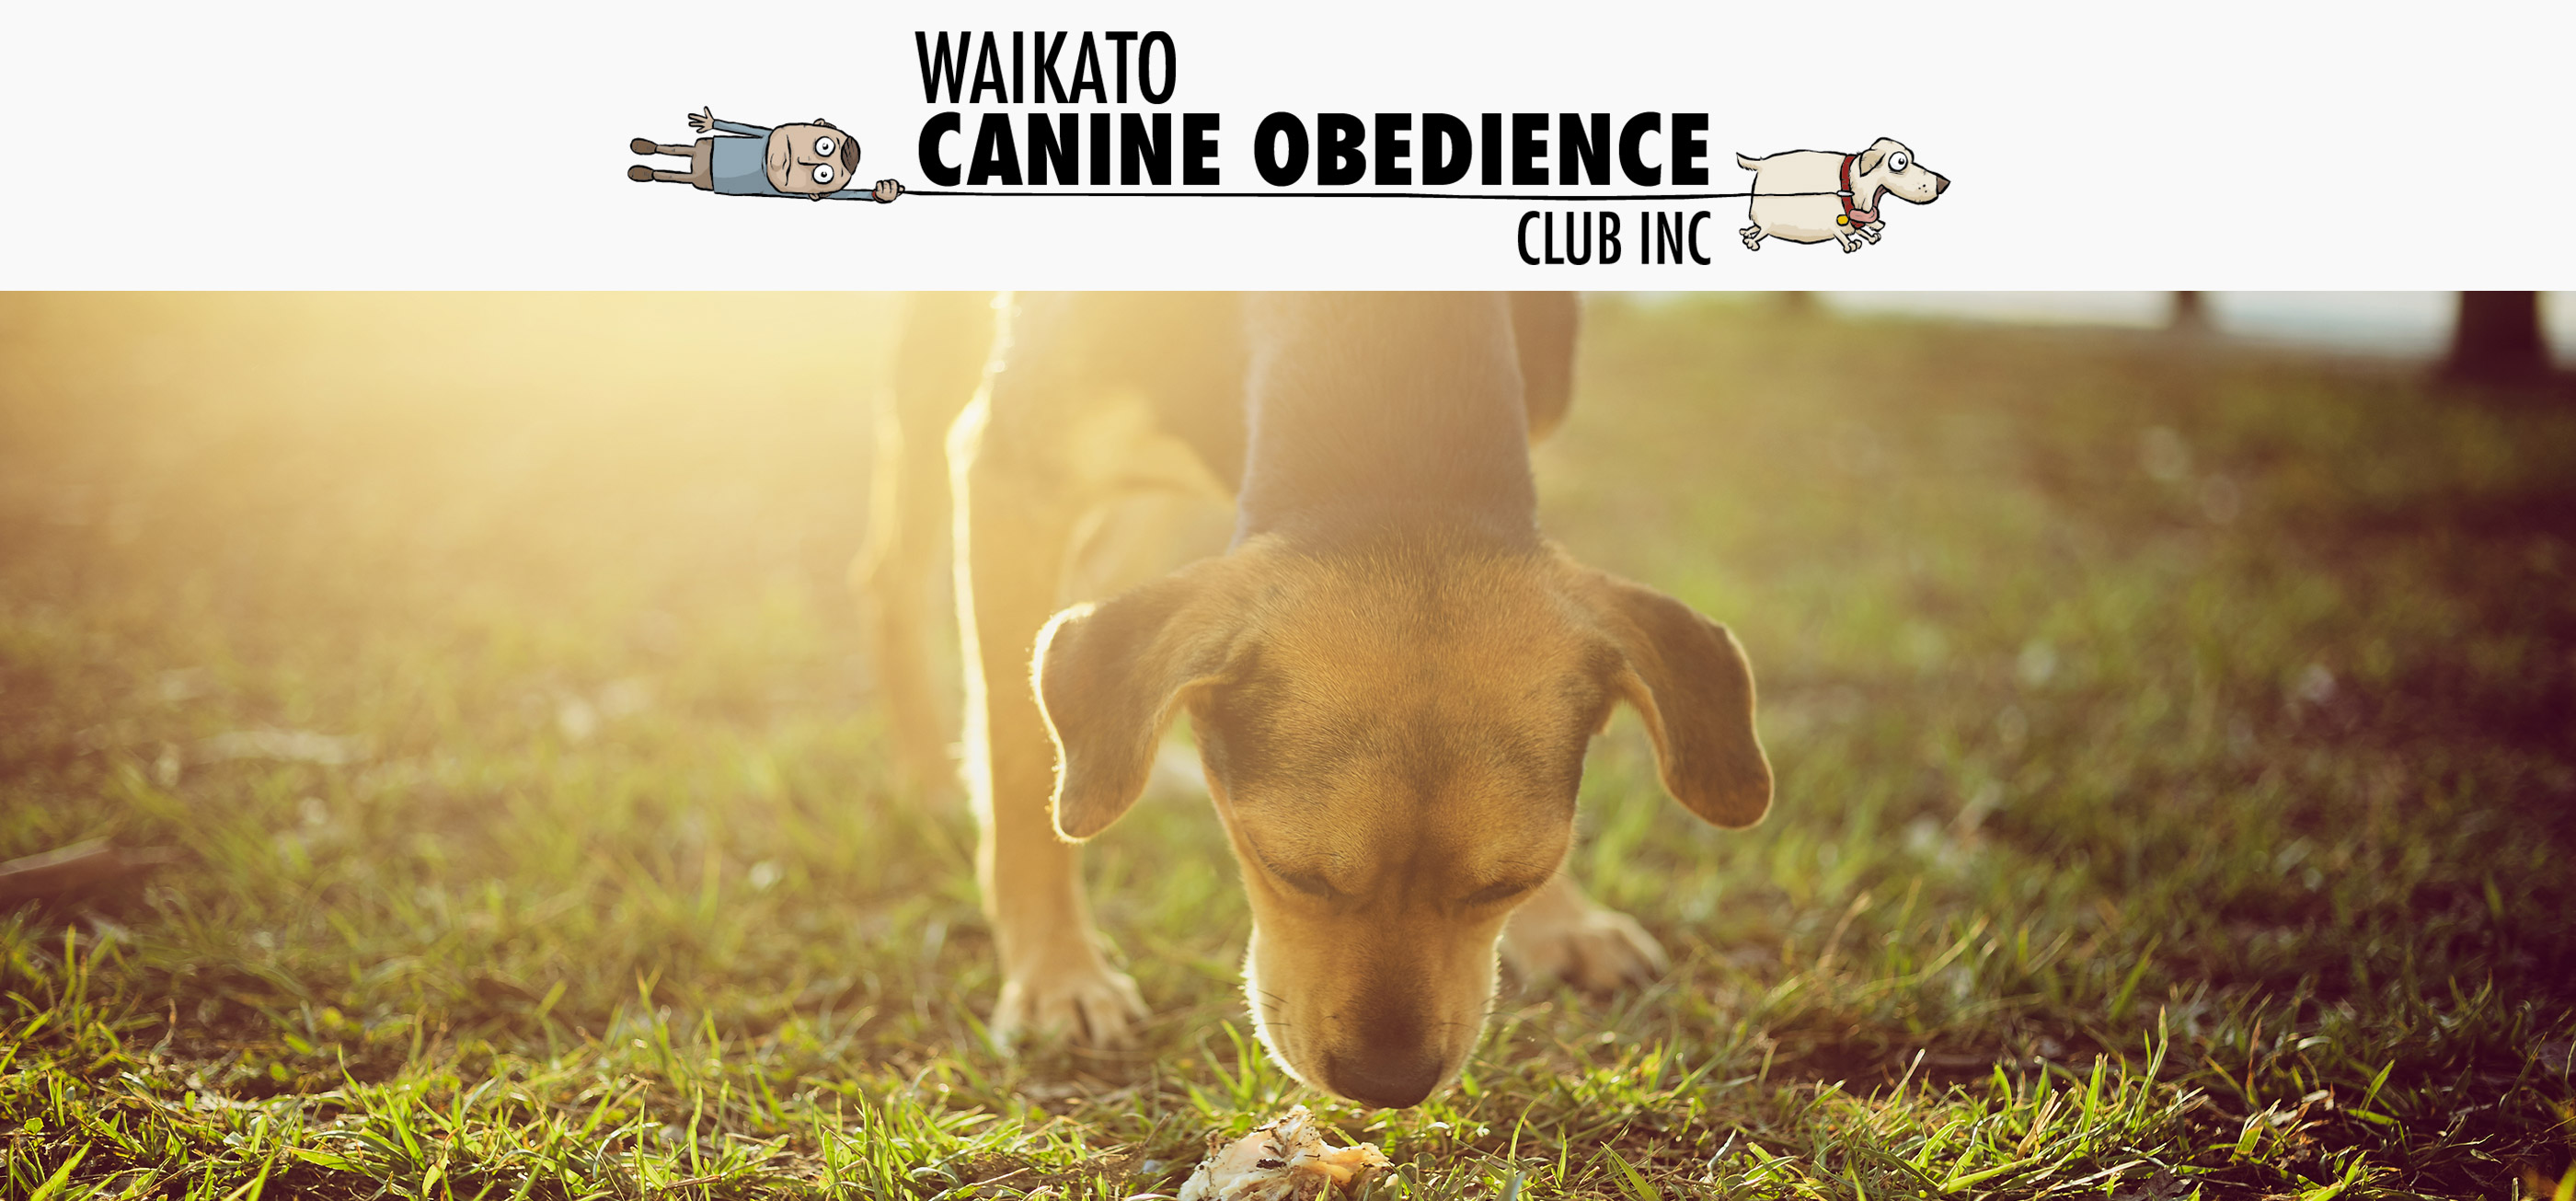 Waikato Canine Obedience Club